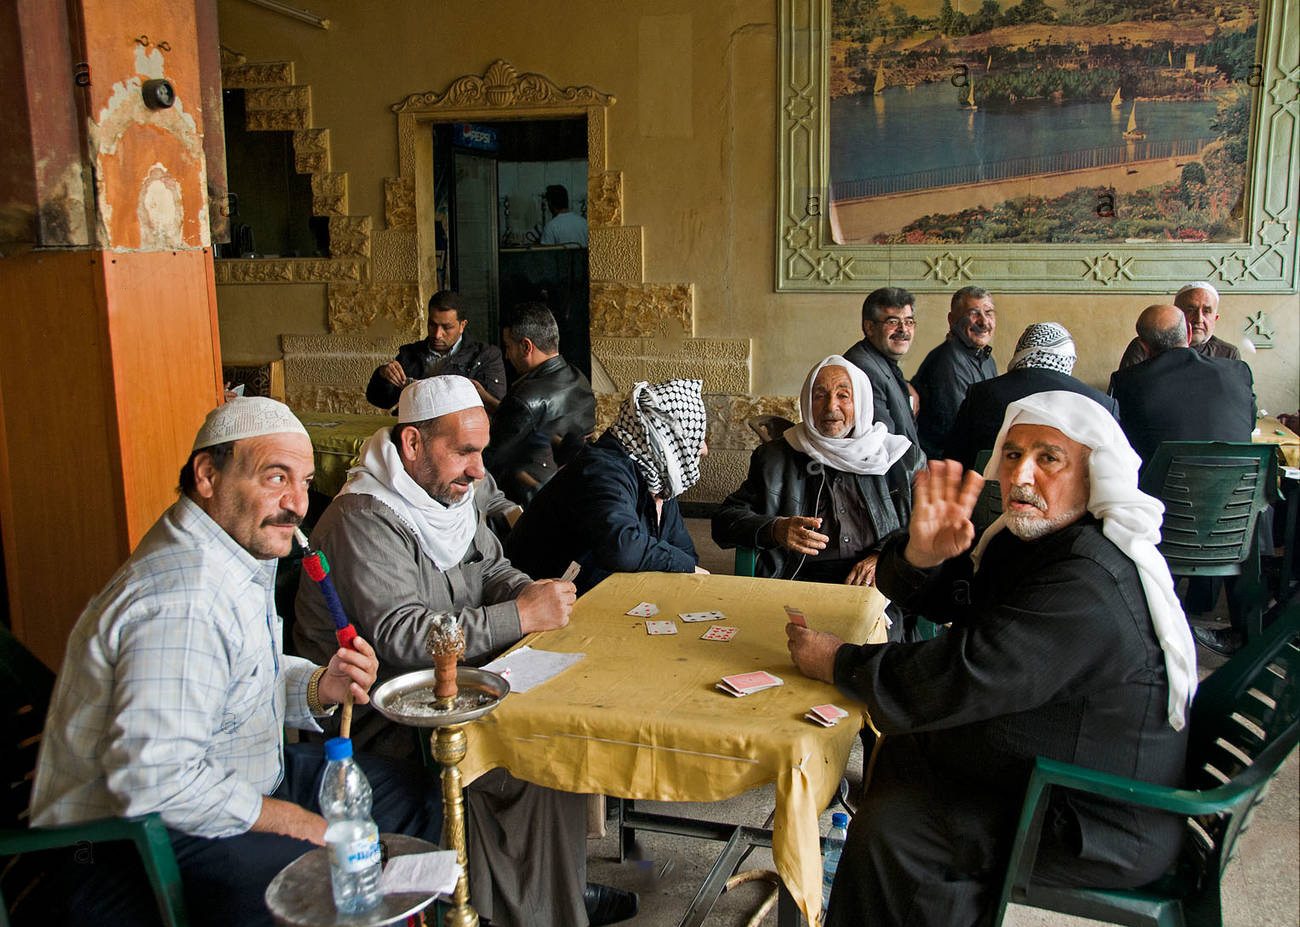 Syrian elders in Damascus café sipping tea and playing cards - 2011 Expressive (alamy)